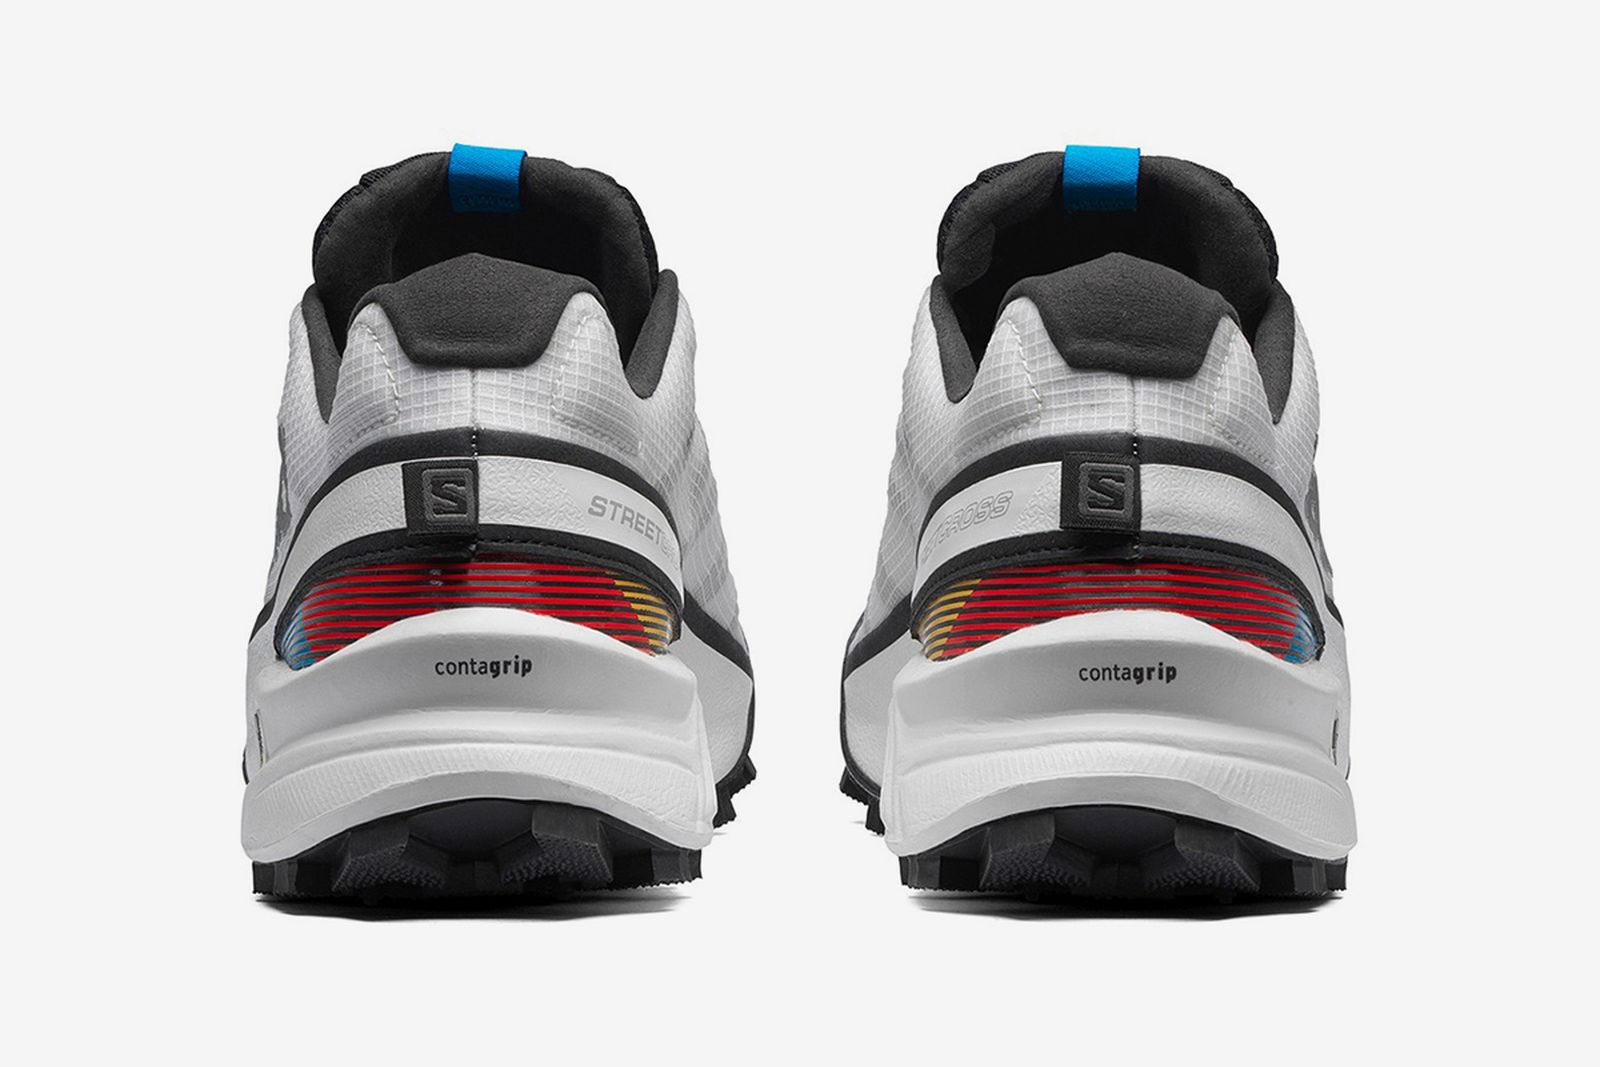 nike-air-max-convenience-store-collection-release-info-4-03